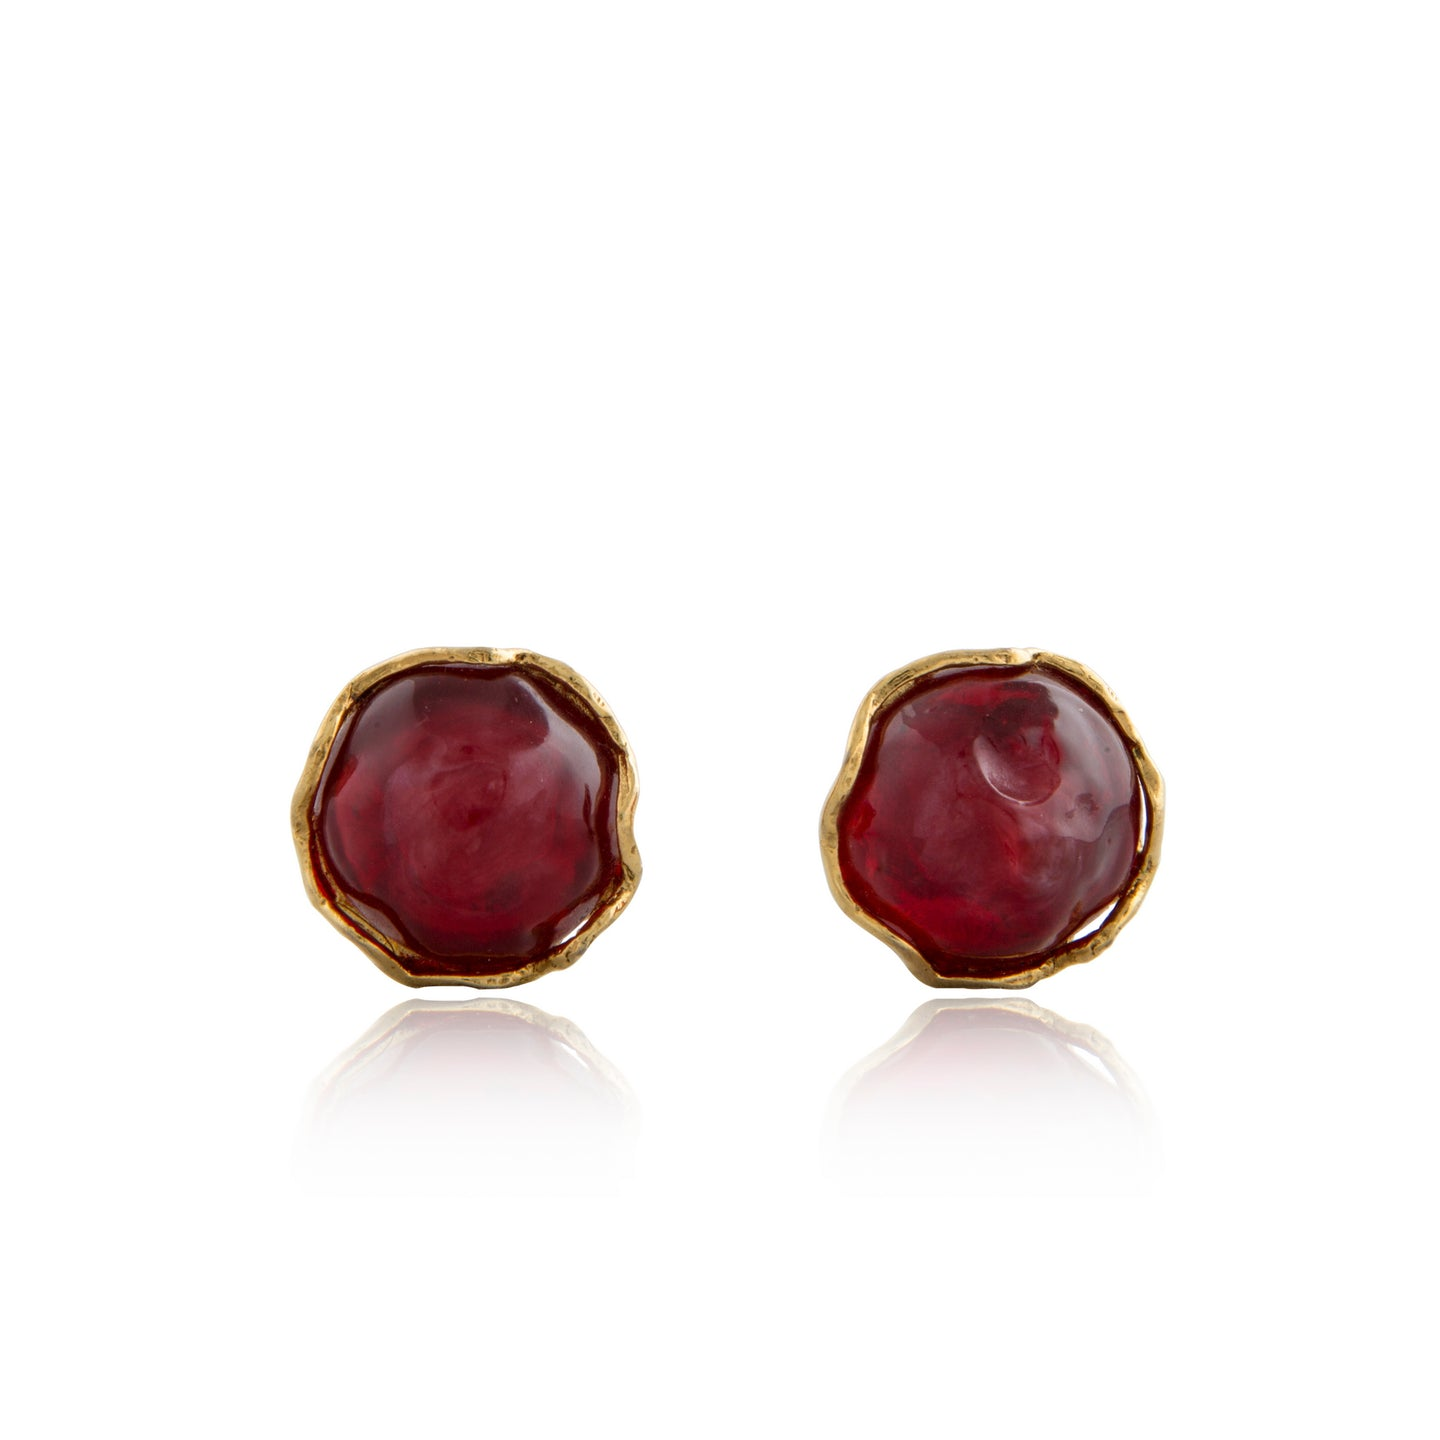 Vintage Yves Saint Laurent Red Cabochon Jelly Earrings